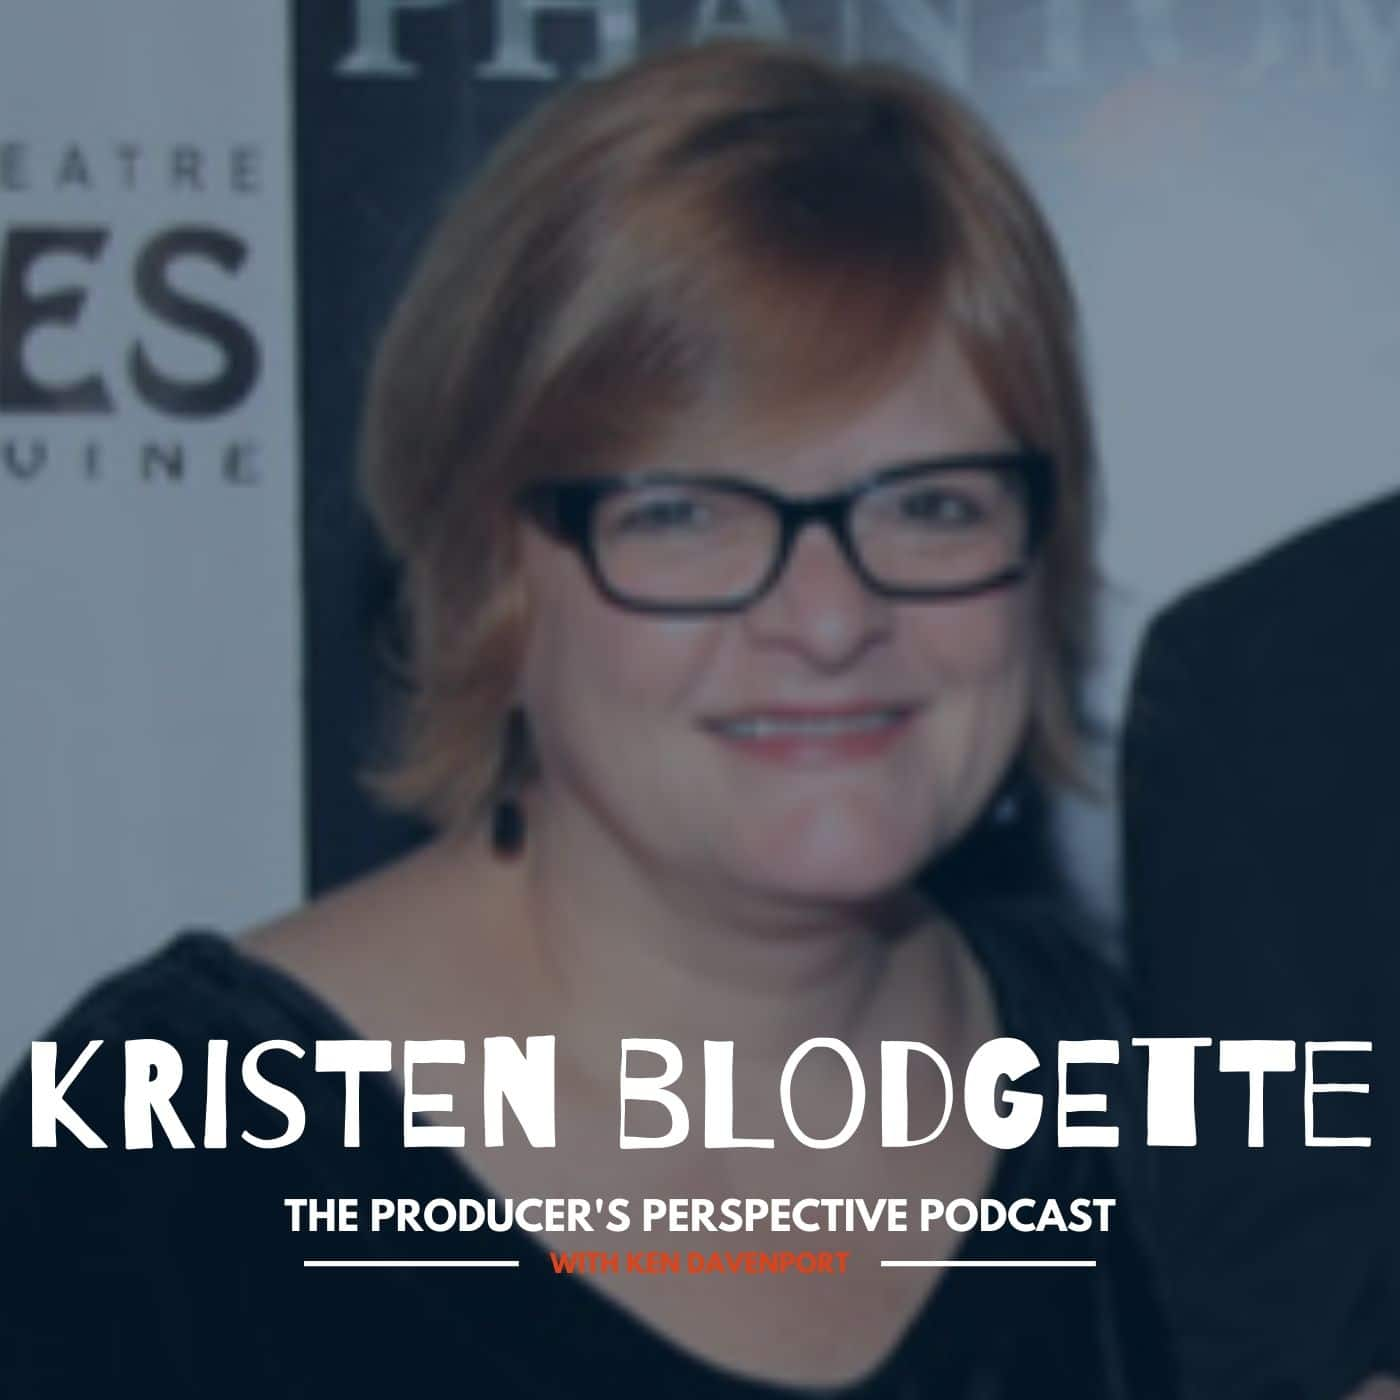 Ken Davenport's The Producer's Perspective Podcast Episode 166 - Kristen Blodgette